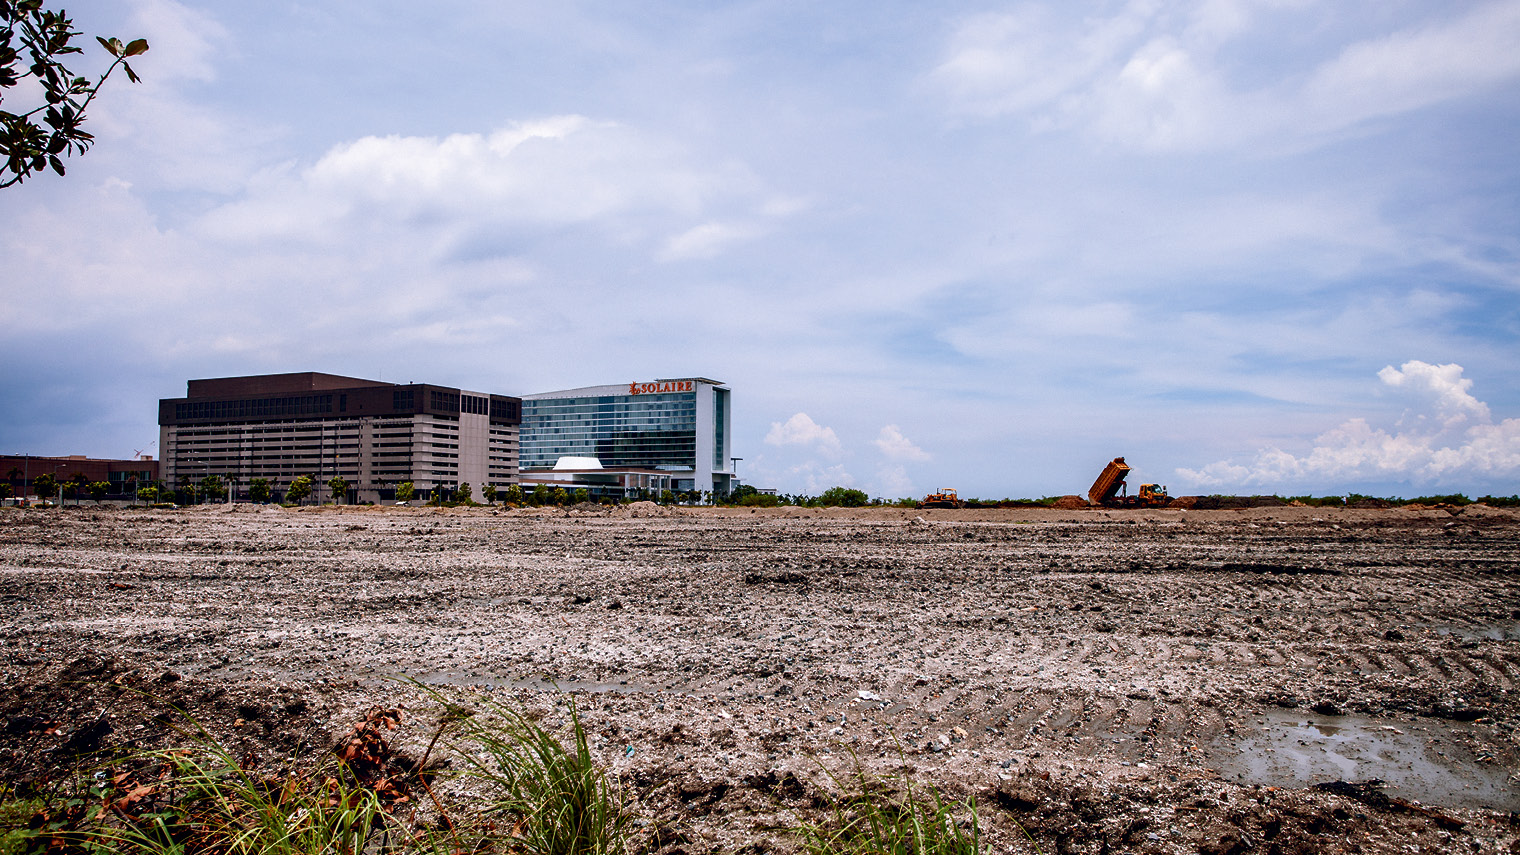 Manila's Entertainment City is still under construction, and hopes to attract Asia's gambling elite